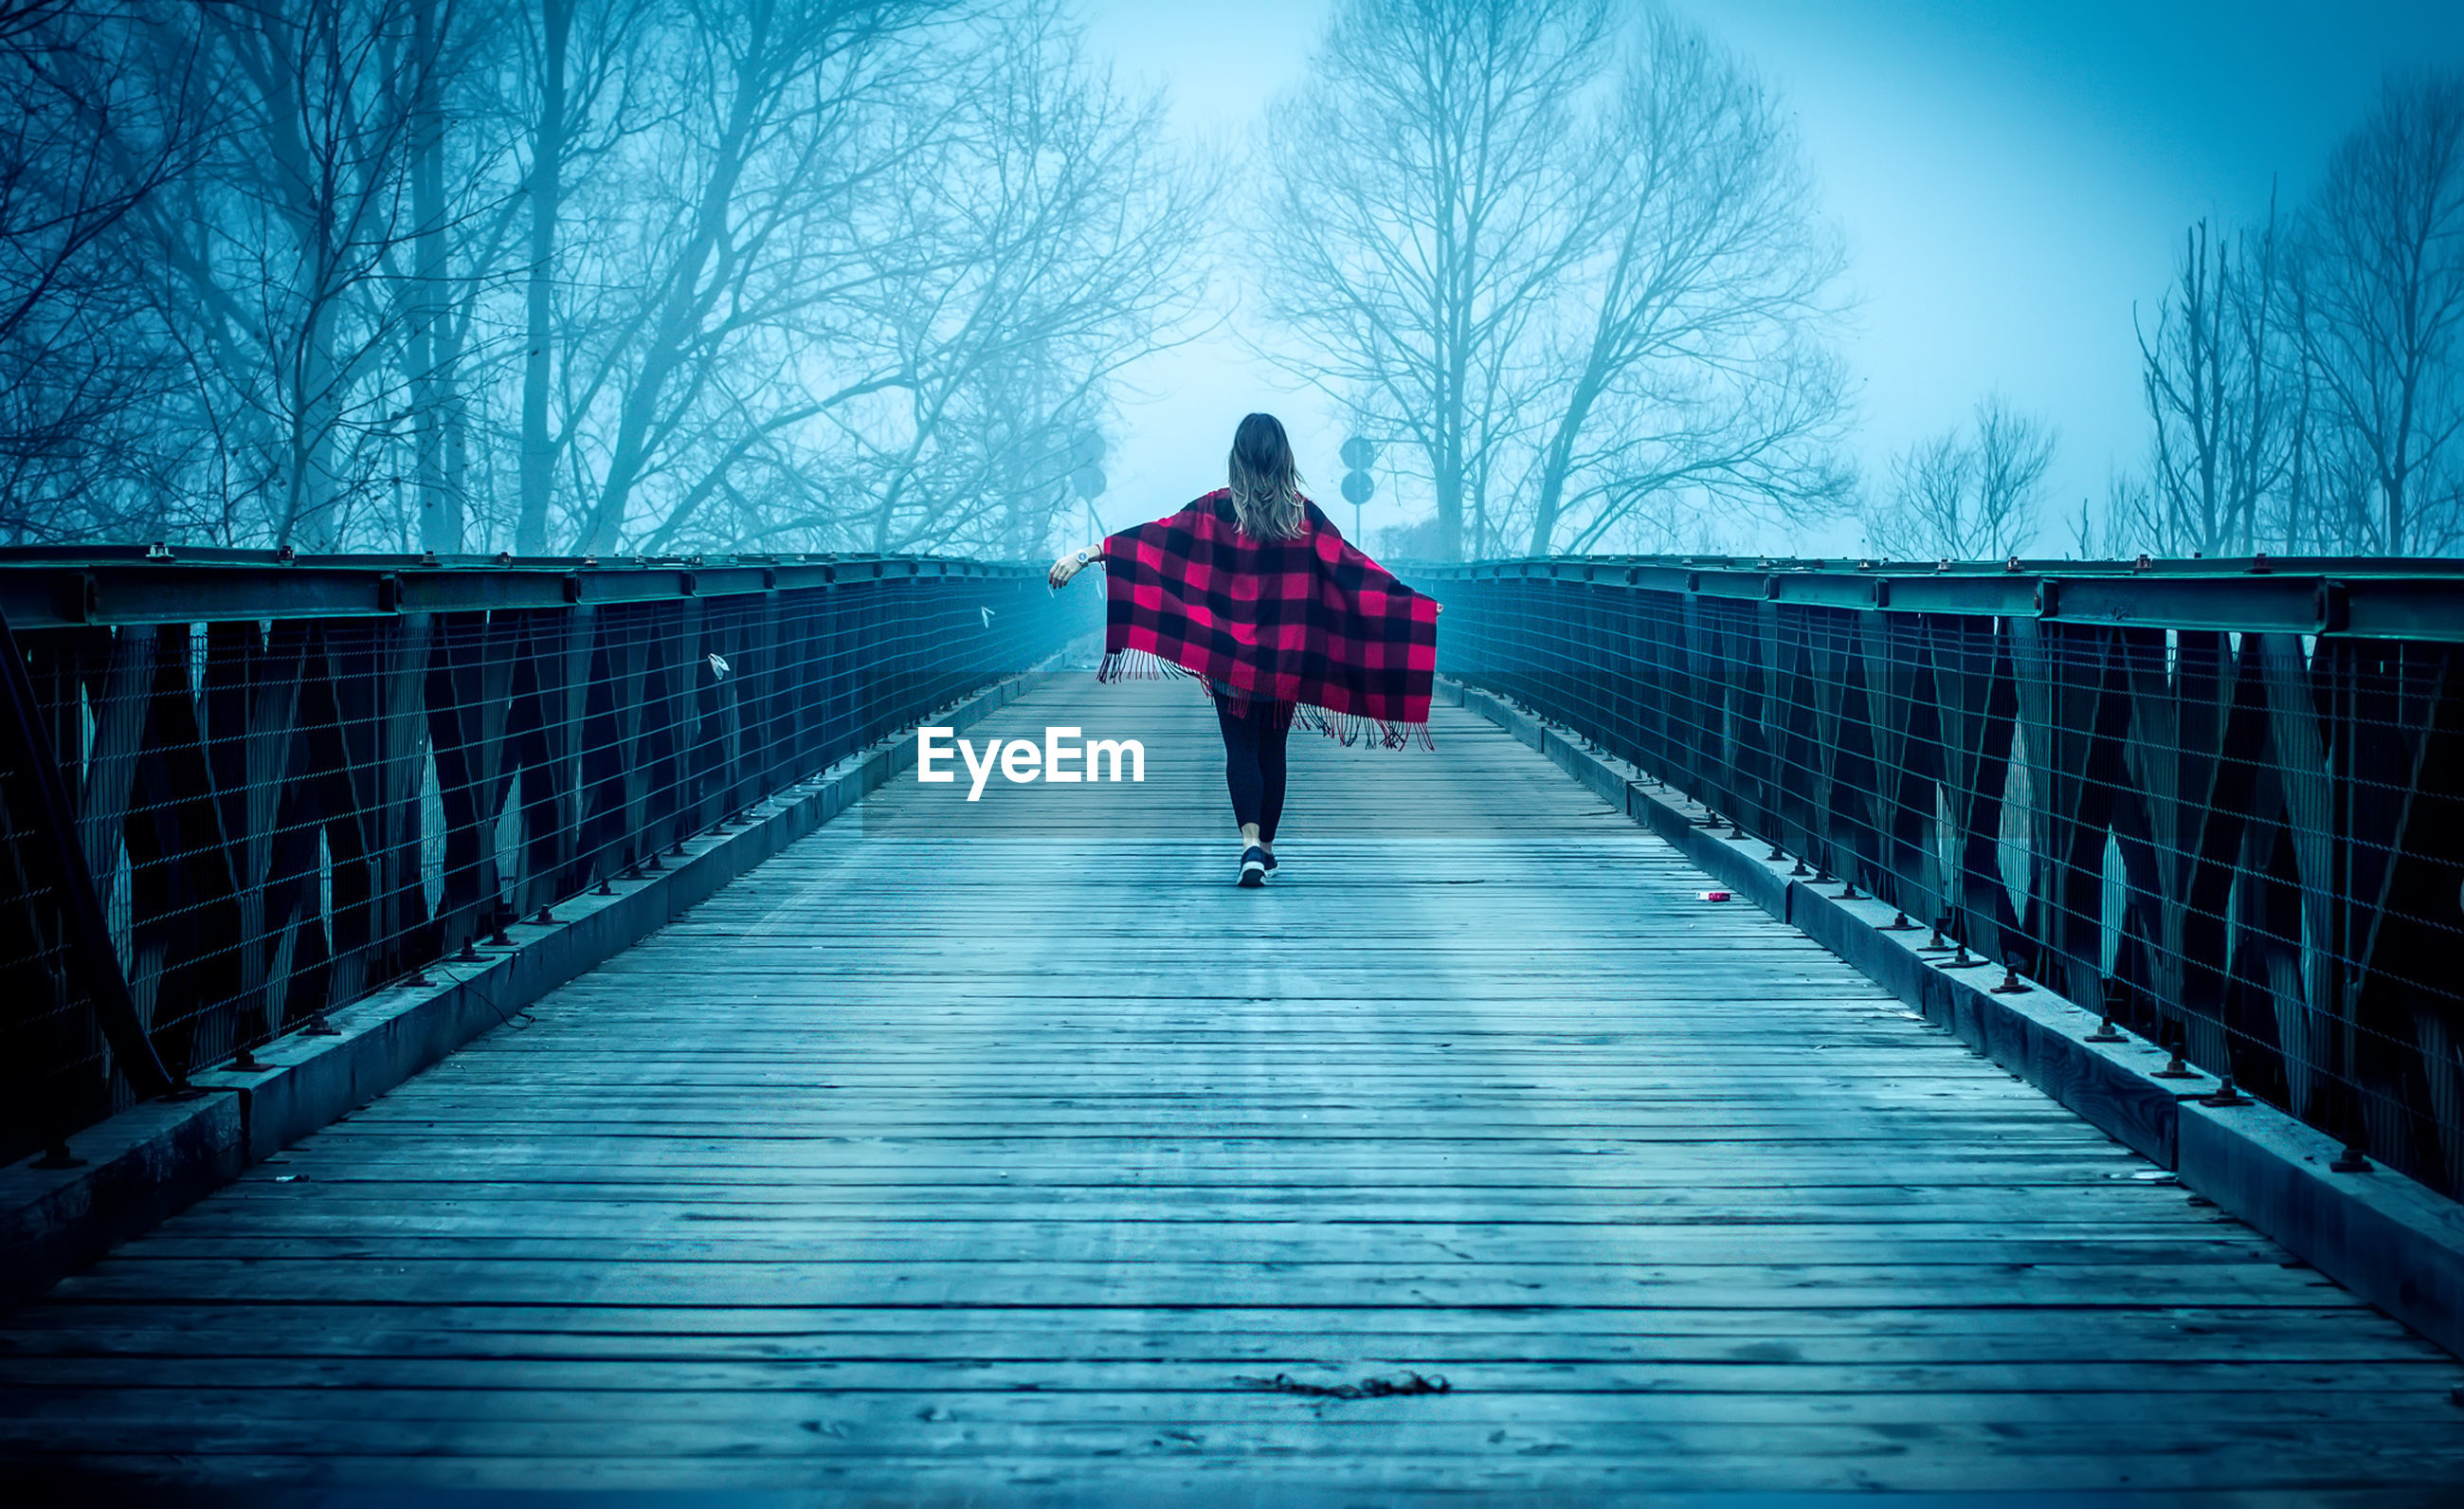 Rear view of woman walking on bridge against sky during foggy weather